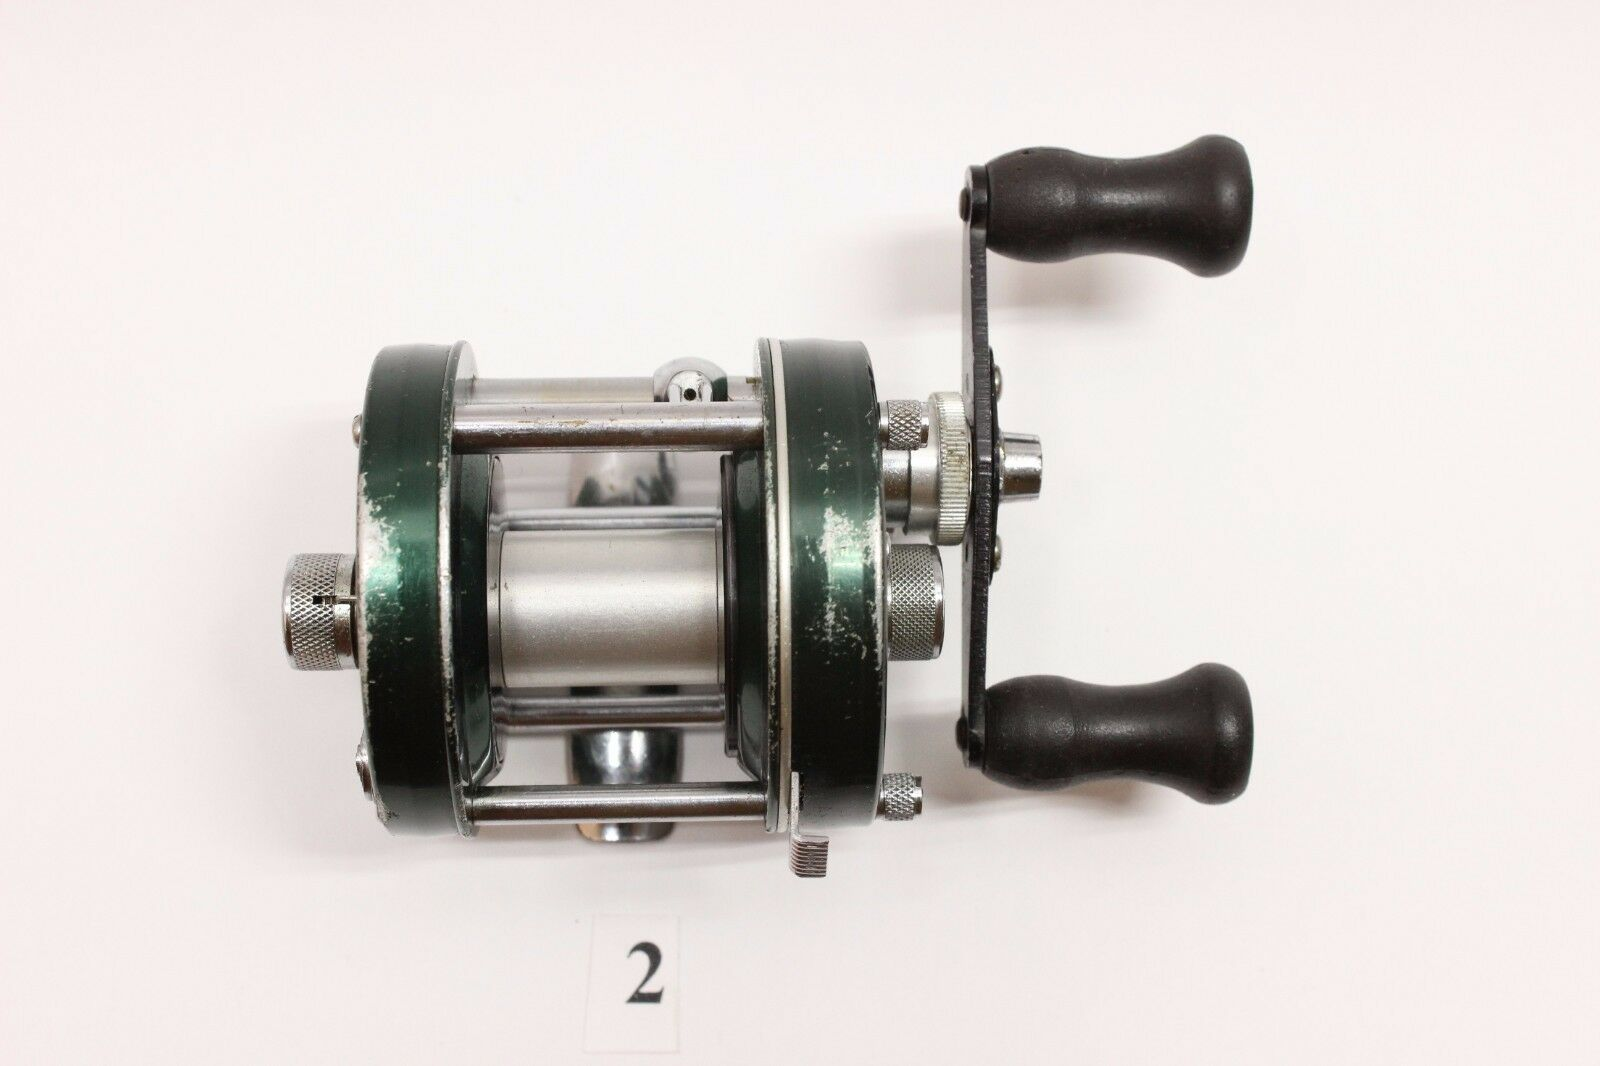 Abu Ambassadeur 5000D Sweden Green  Fishing Reel Tang Number 740100 Vintage  with 100% quality and %100 service